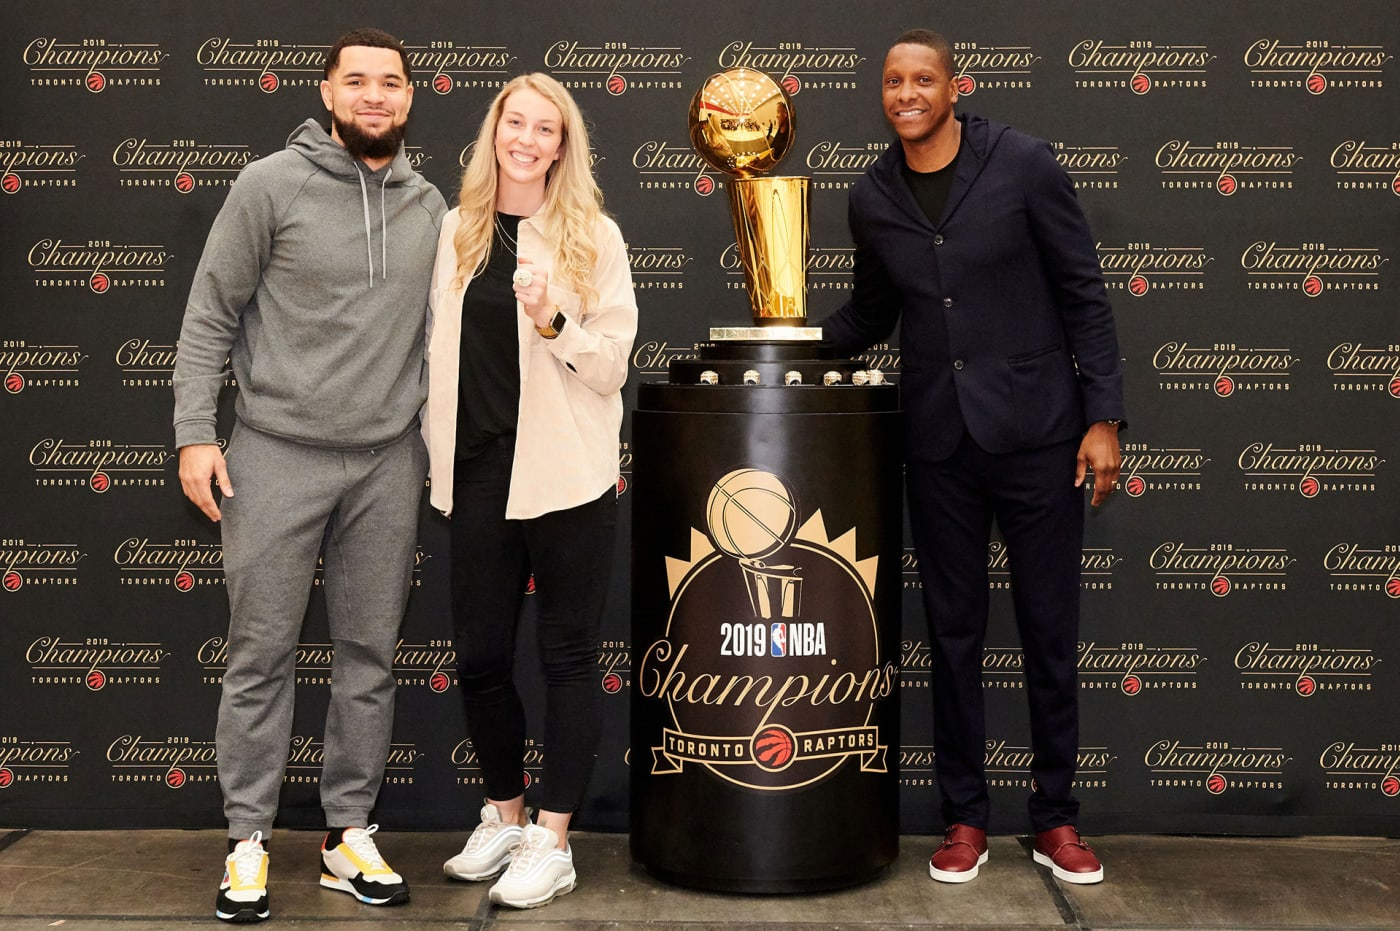 Toronto Raptors' Shelby Weaver poses with Fred VanVleet, Masai Ujiri, and the Larry O'Brien trophy